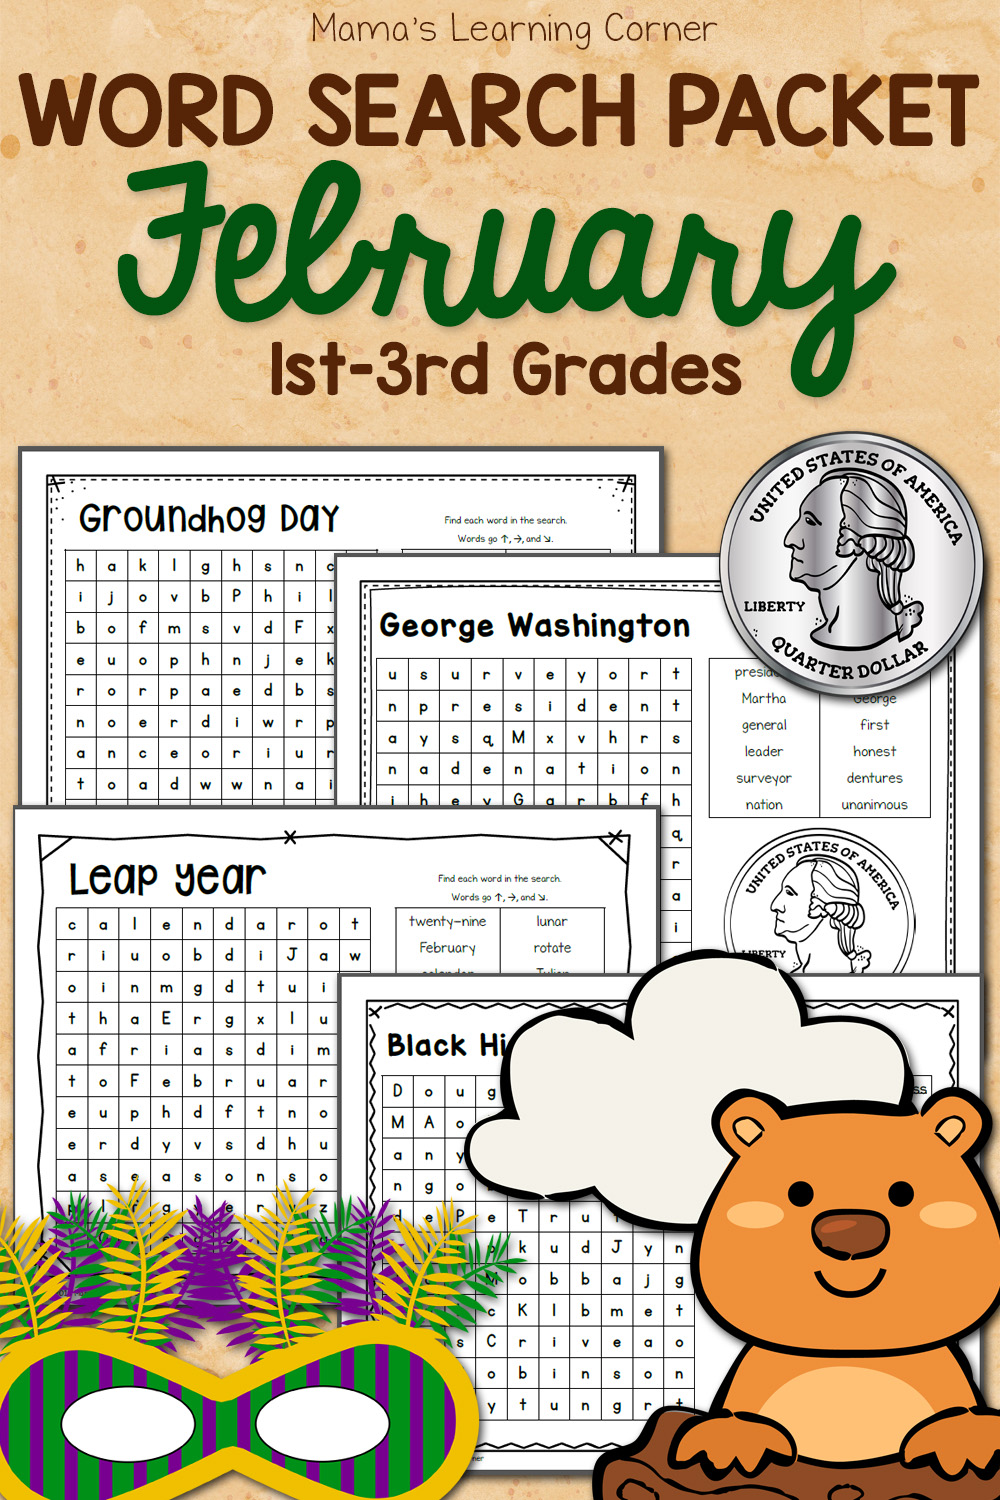 hight resolution of February Word Search Packet - Mamas Learning Corner